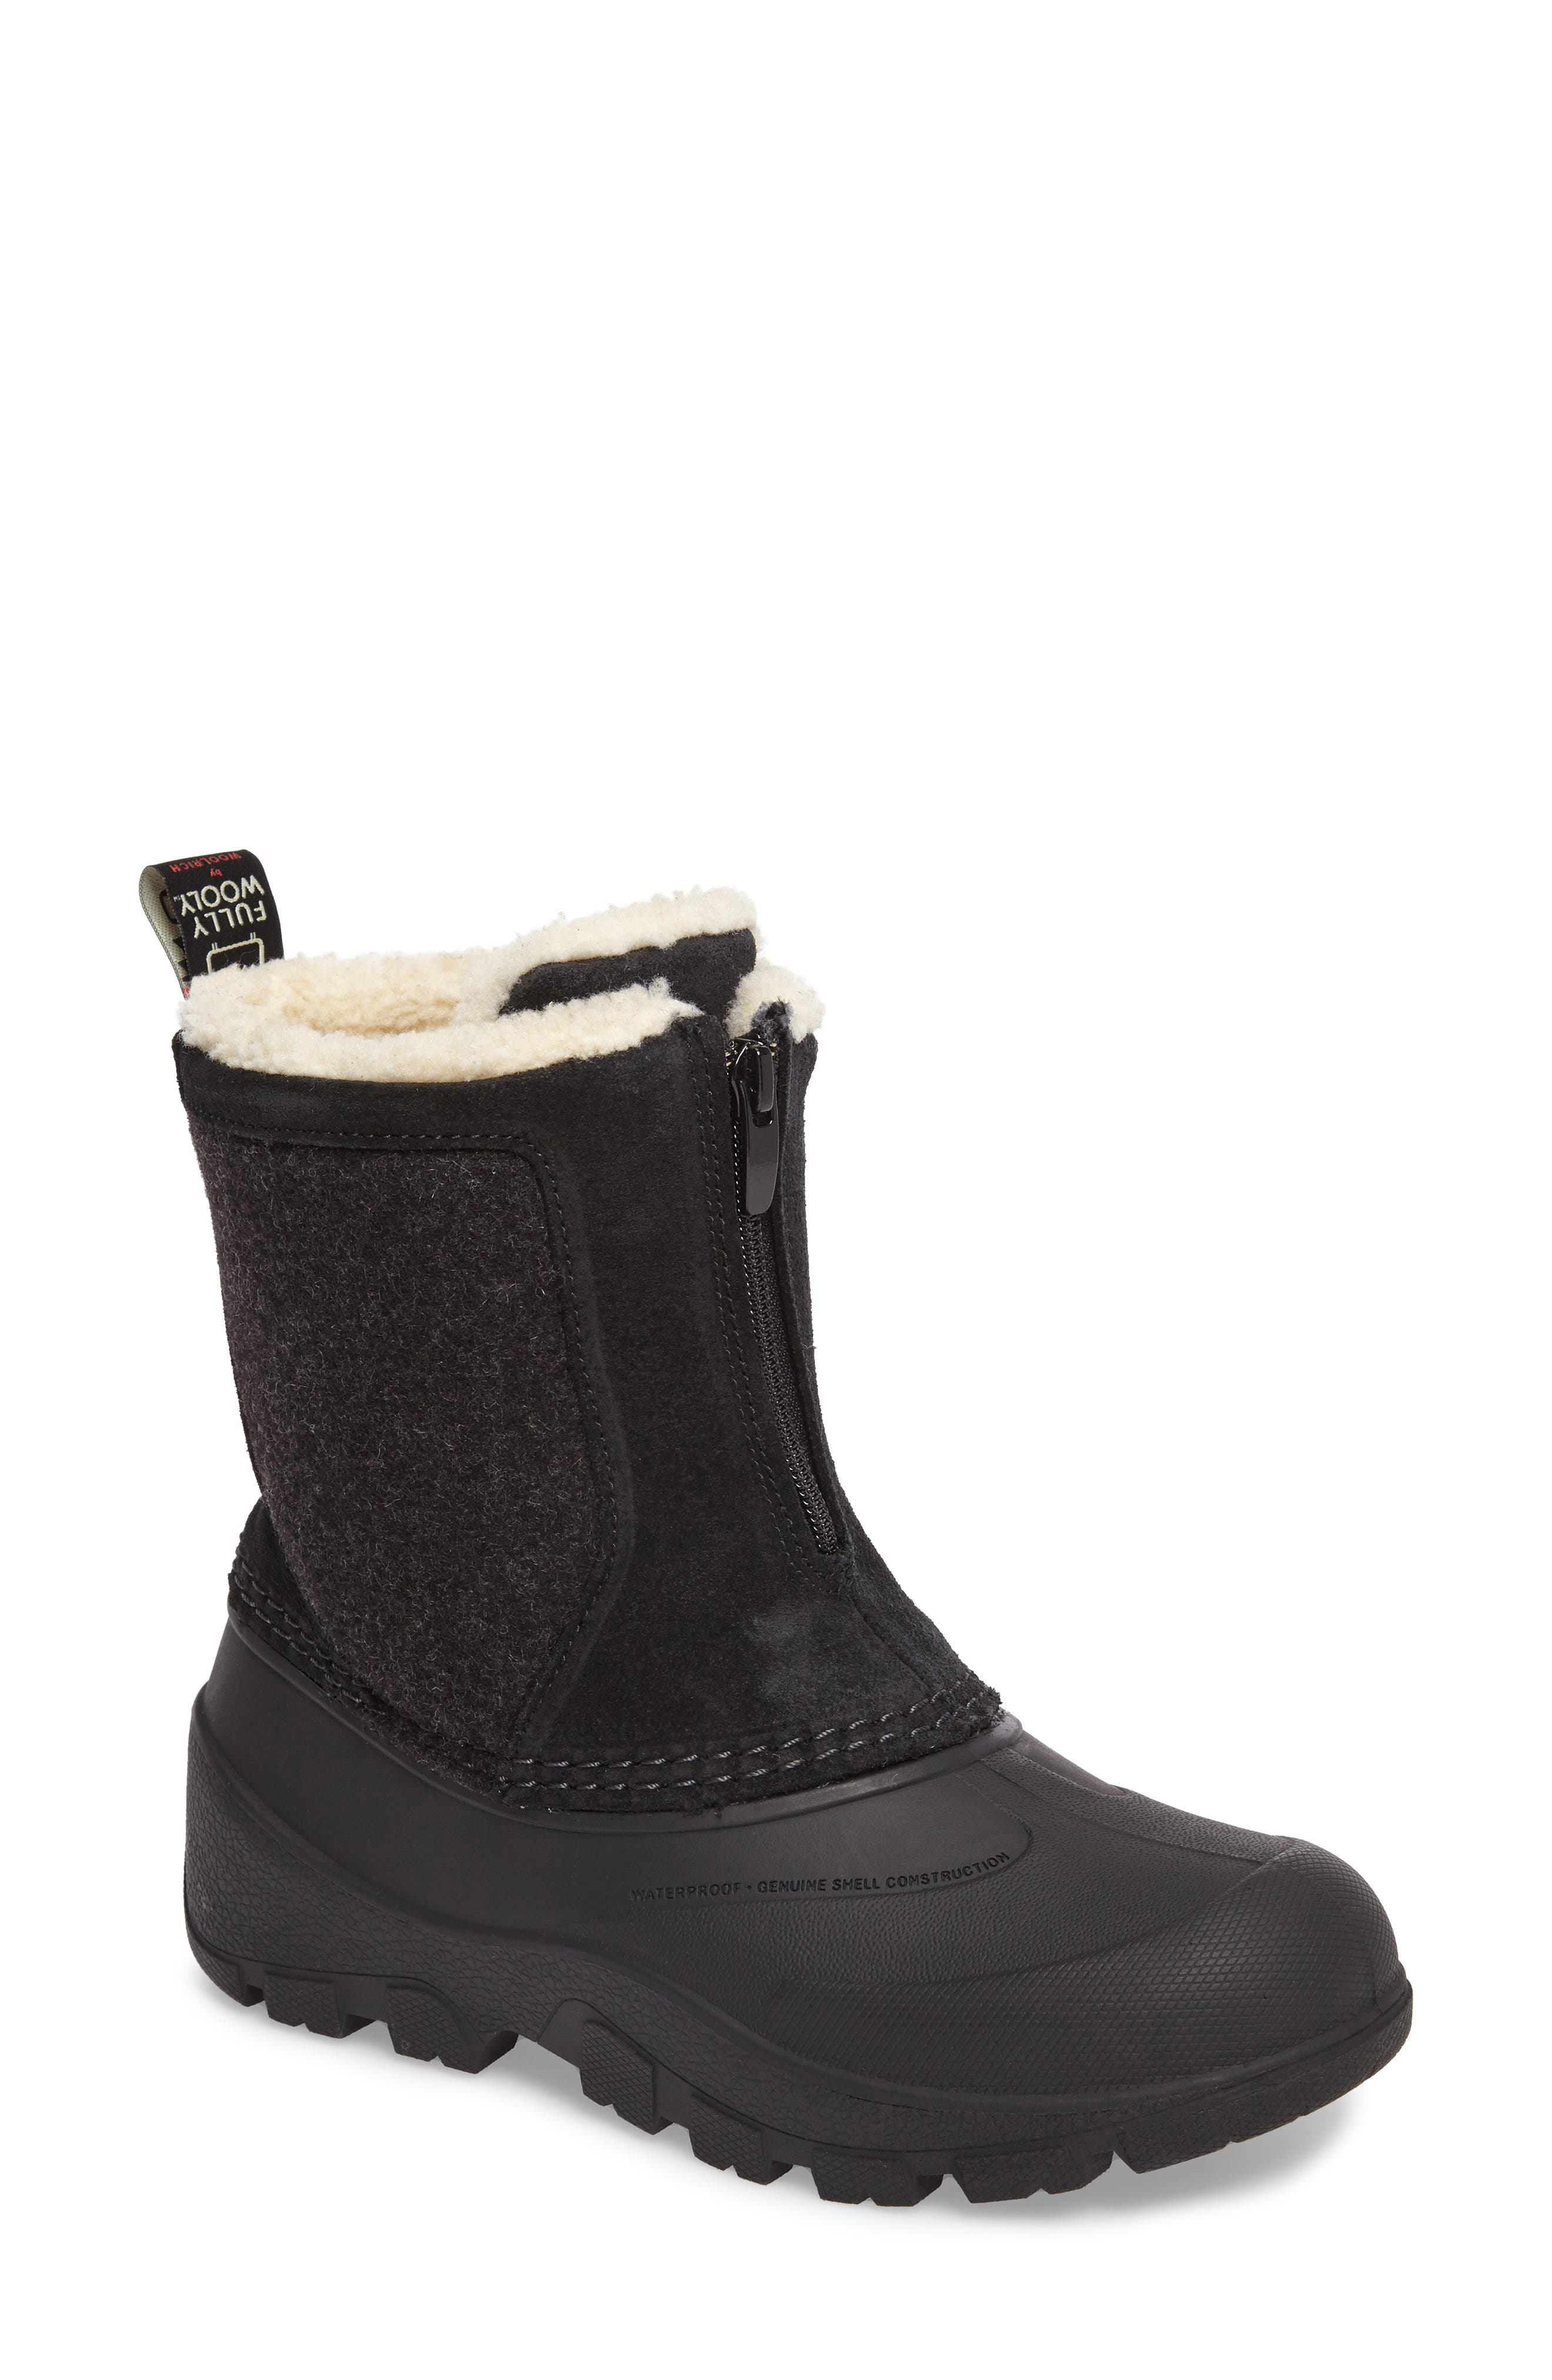 Fully Wooly Icecat Waterproof Insulated Winter Boot, Main, color, 001